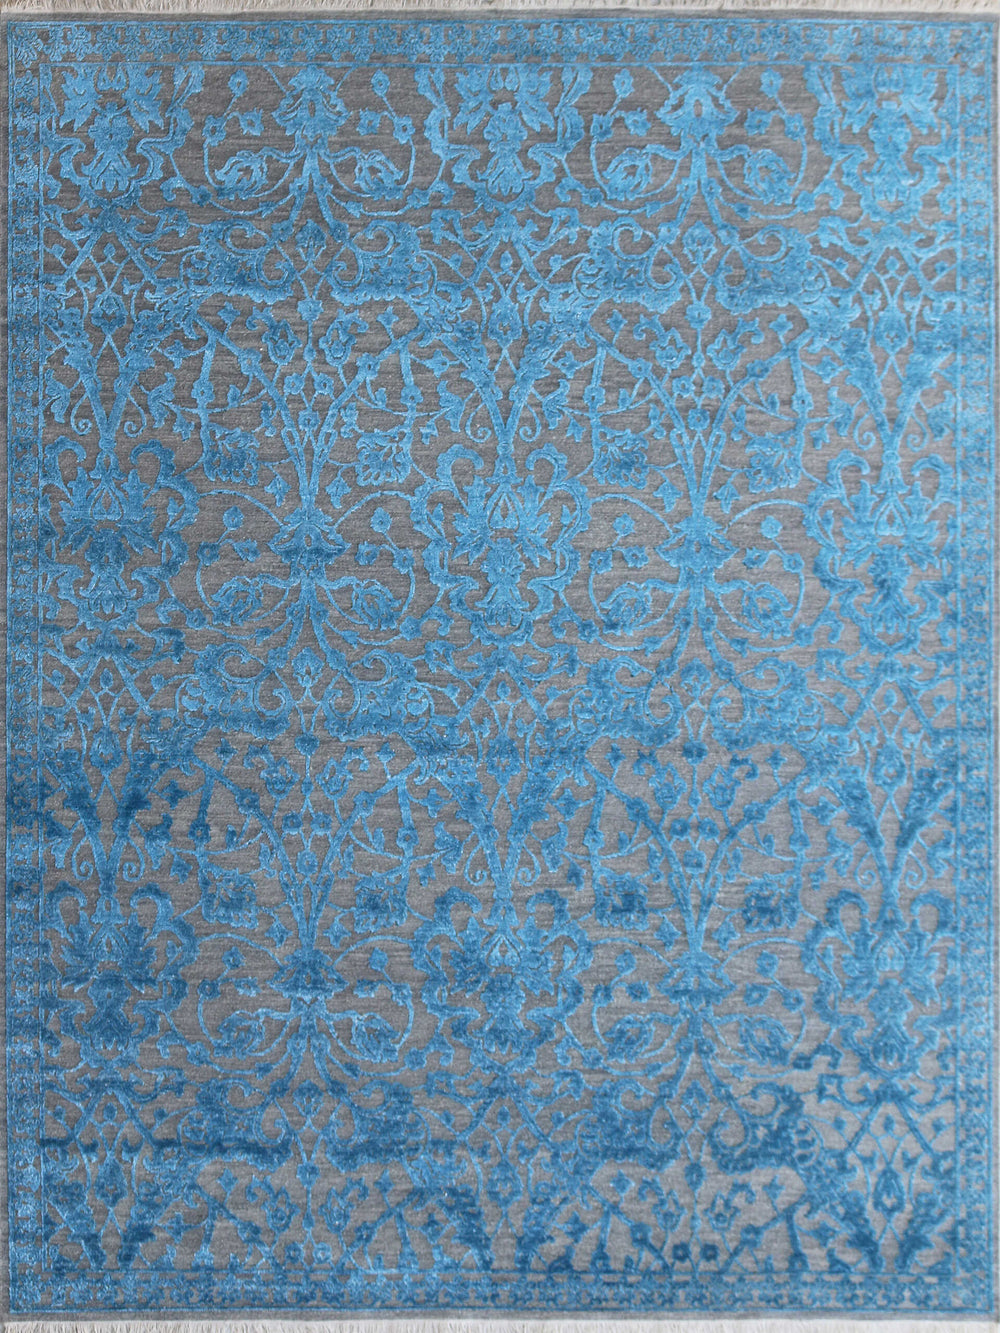 Amer Rugs Joy JOY-7 Area Rug